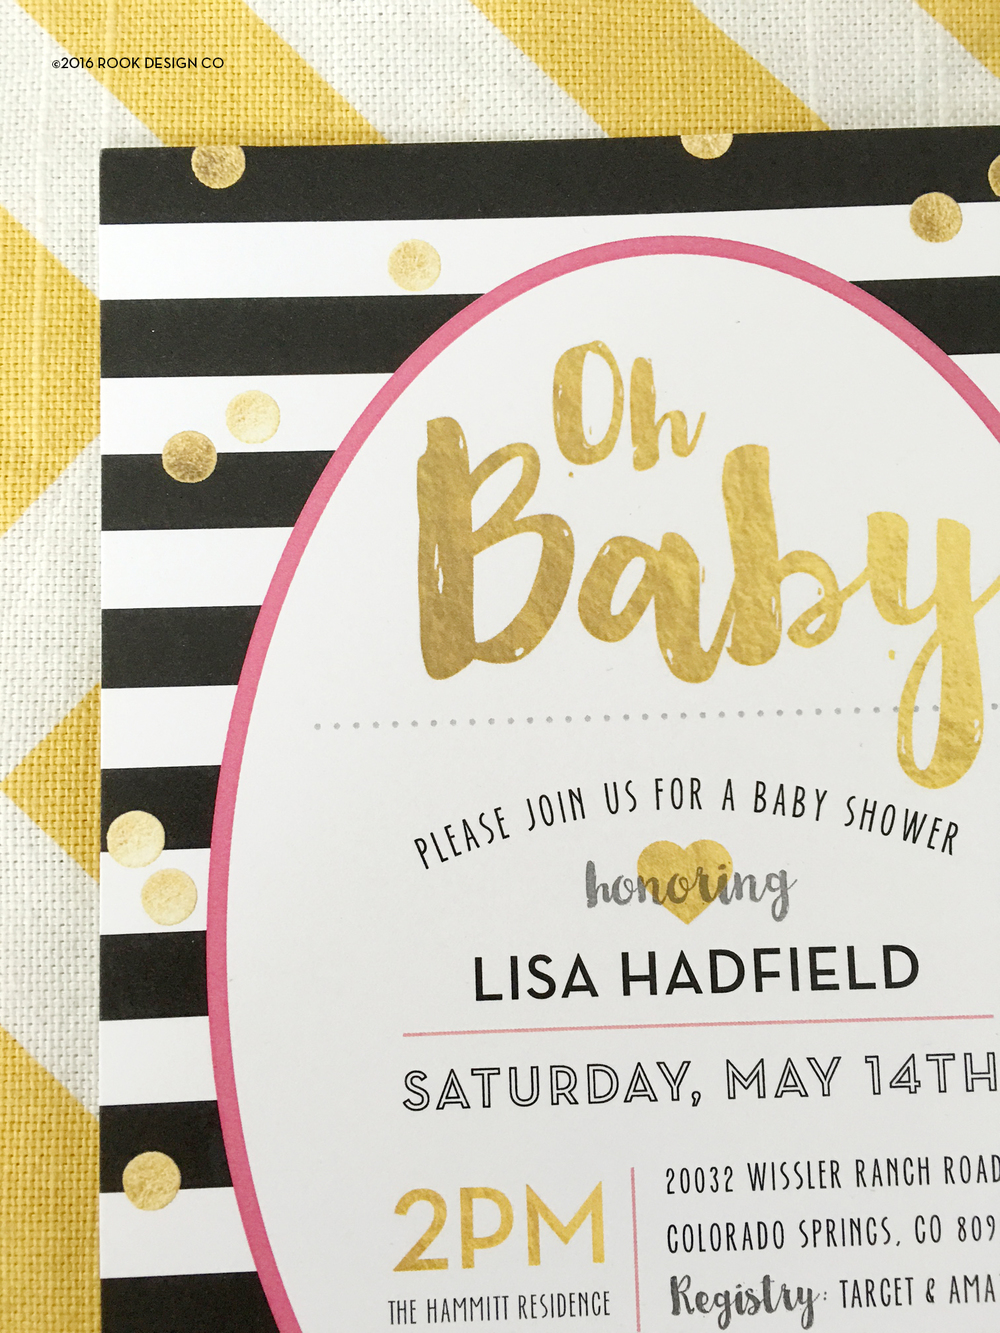 Kate spade inspired baby shower invites rook design co baby shower invitation this festive gold confetti black and white stripe felt so right paired with a hot pink accent for her darling little girl filmwisefo